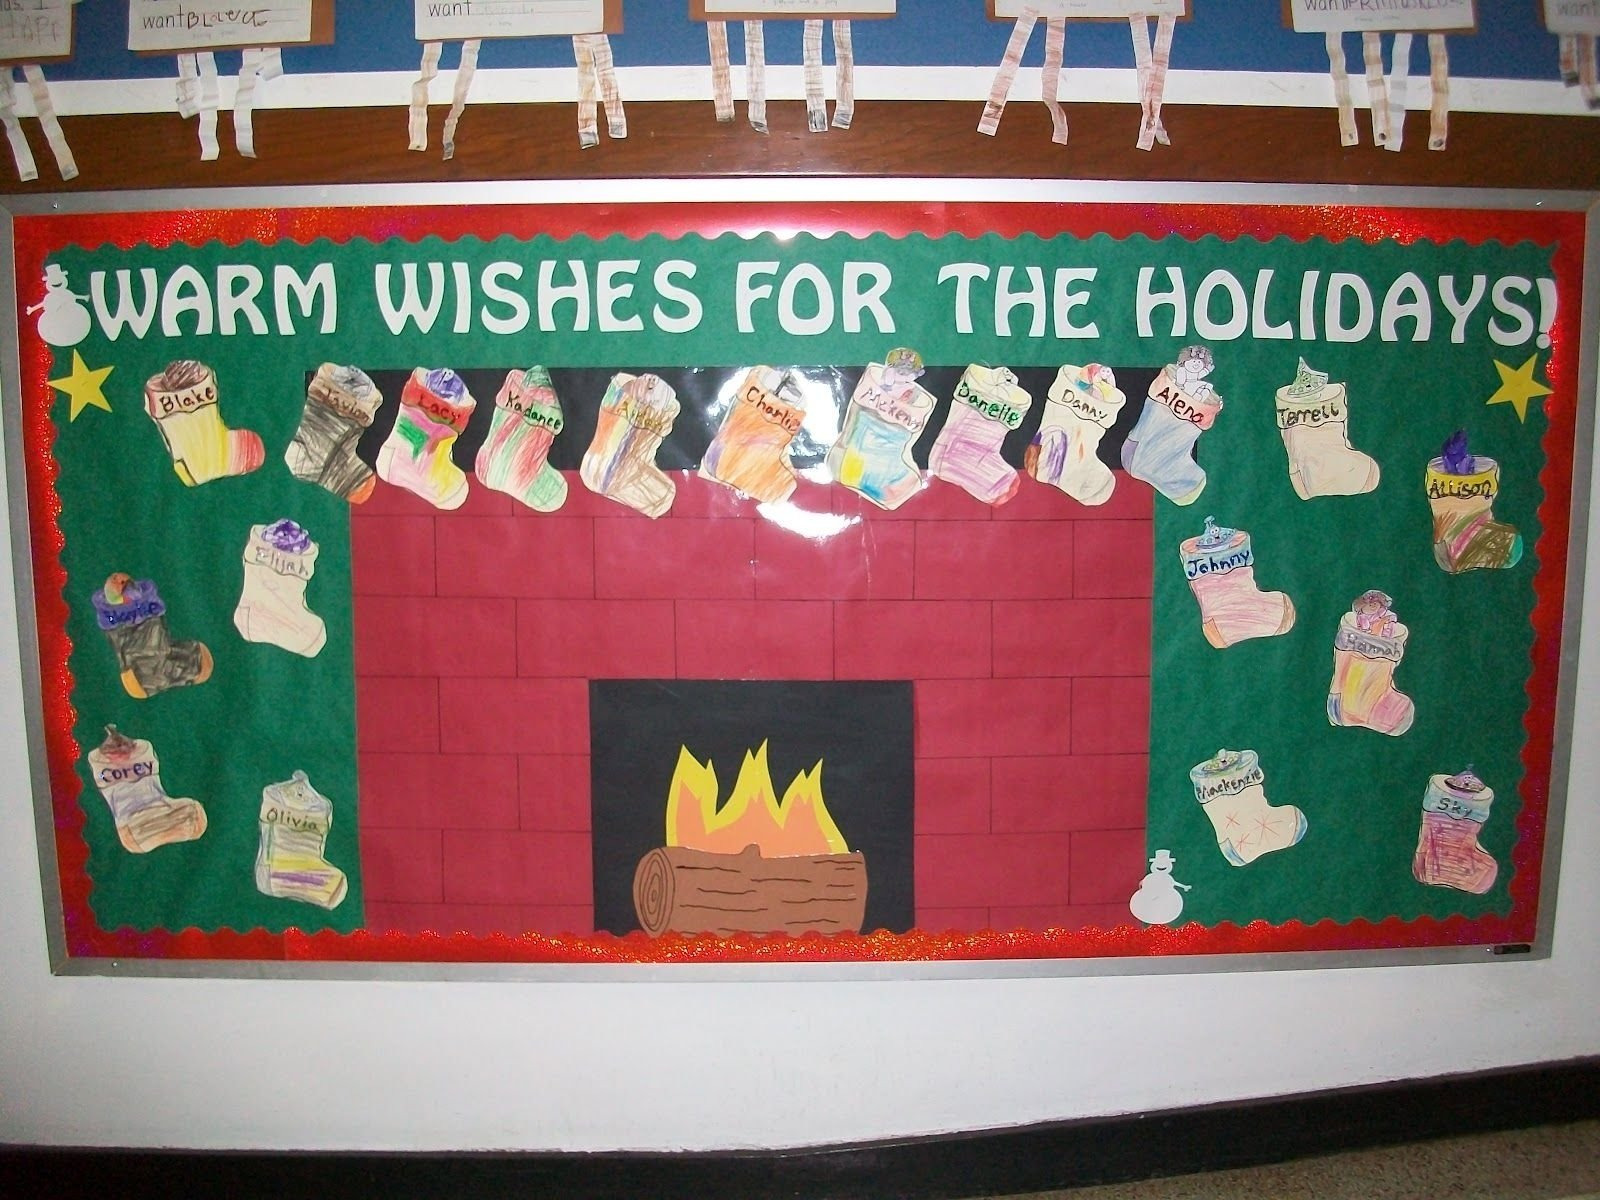 such a cute idea for a bulletin board during the holidays. the